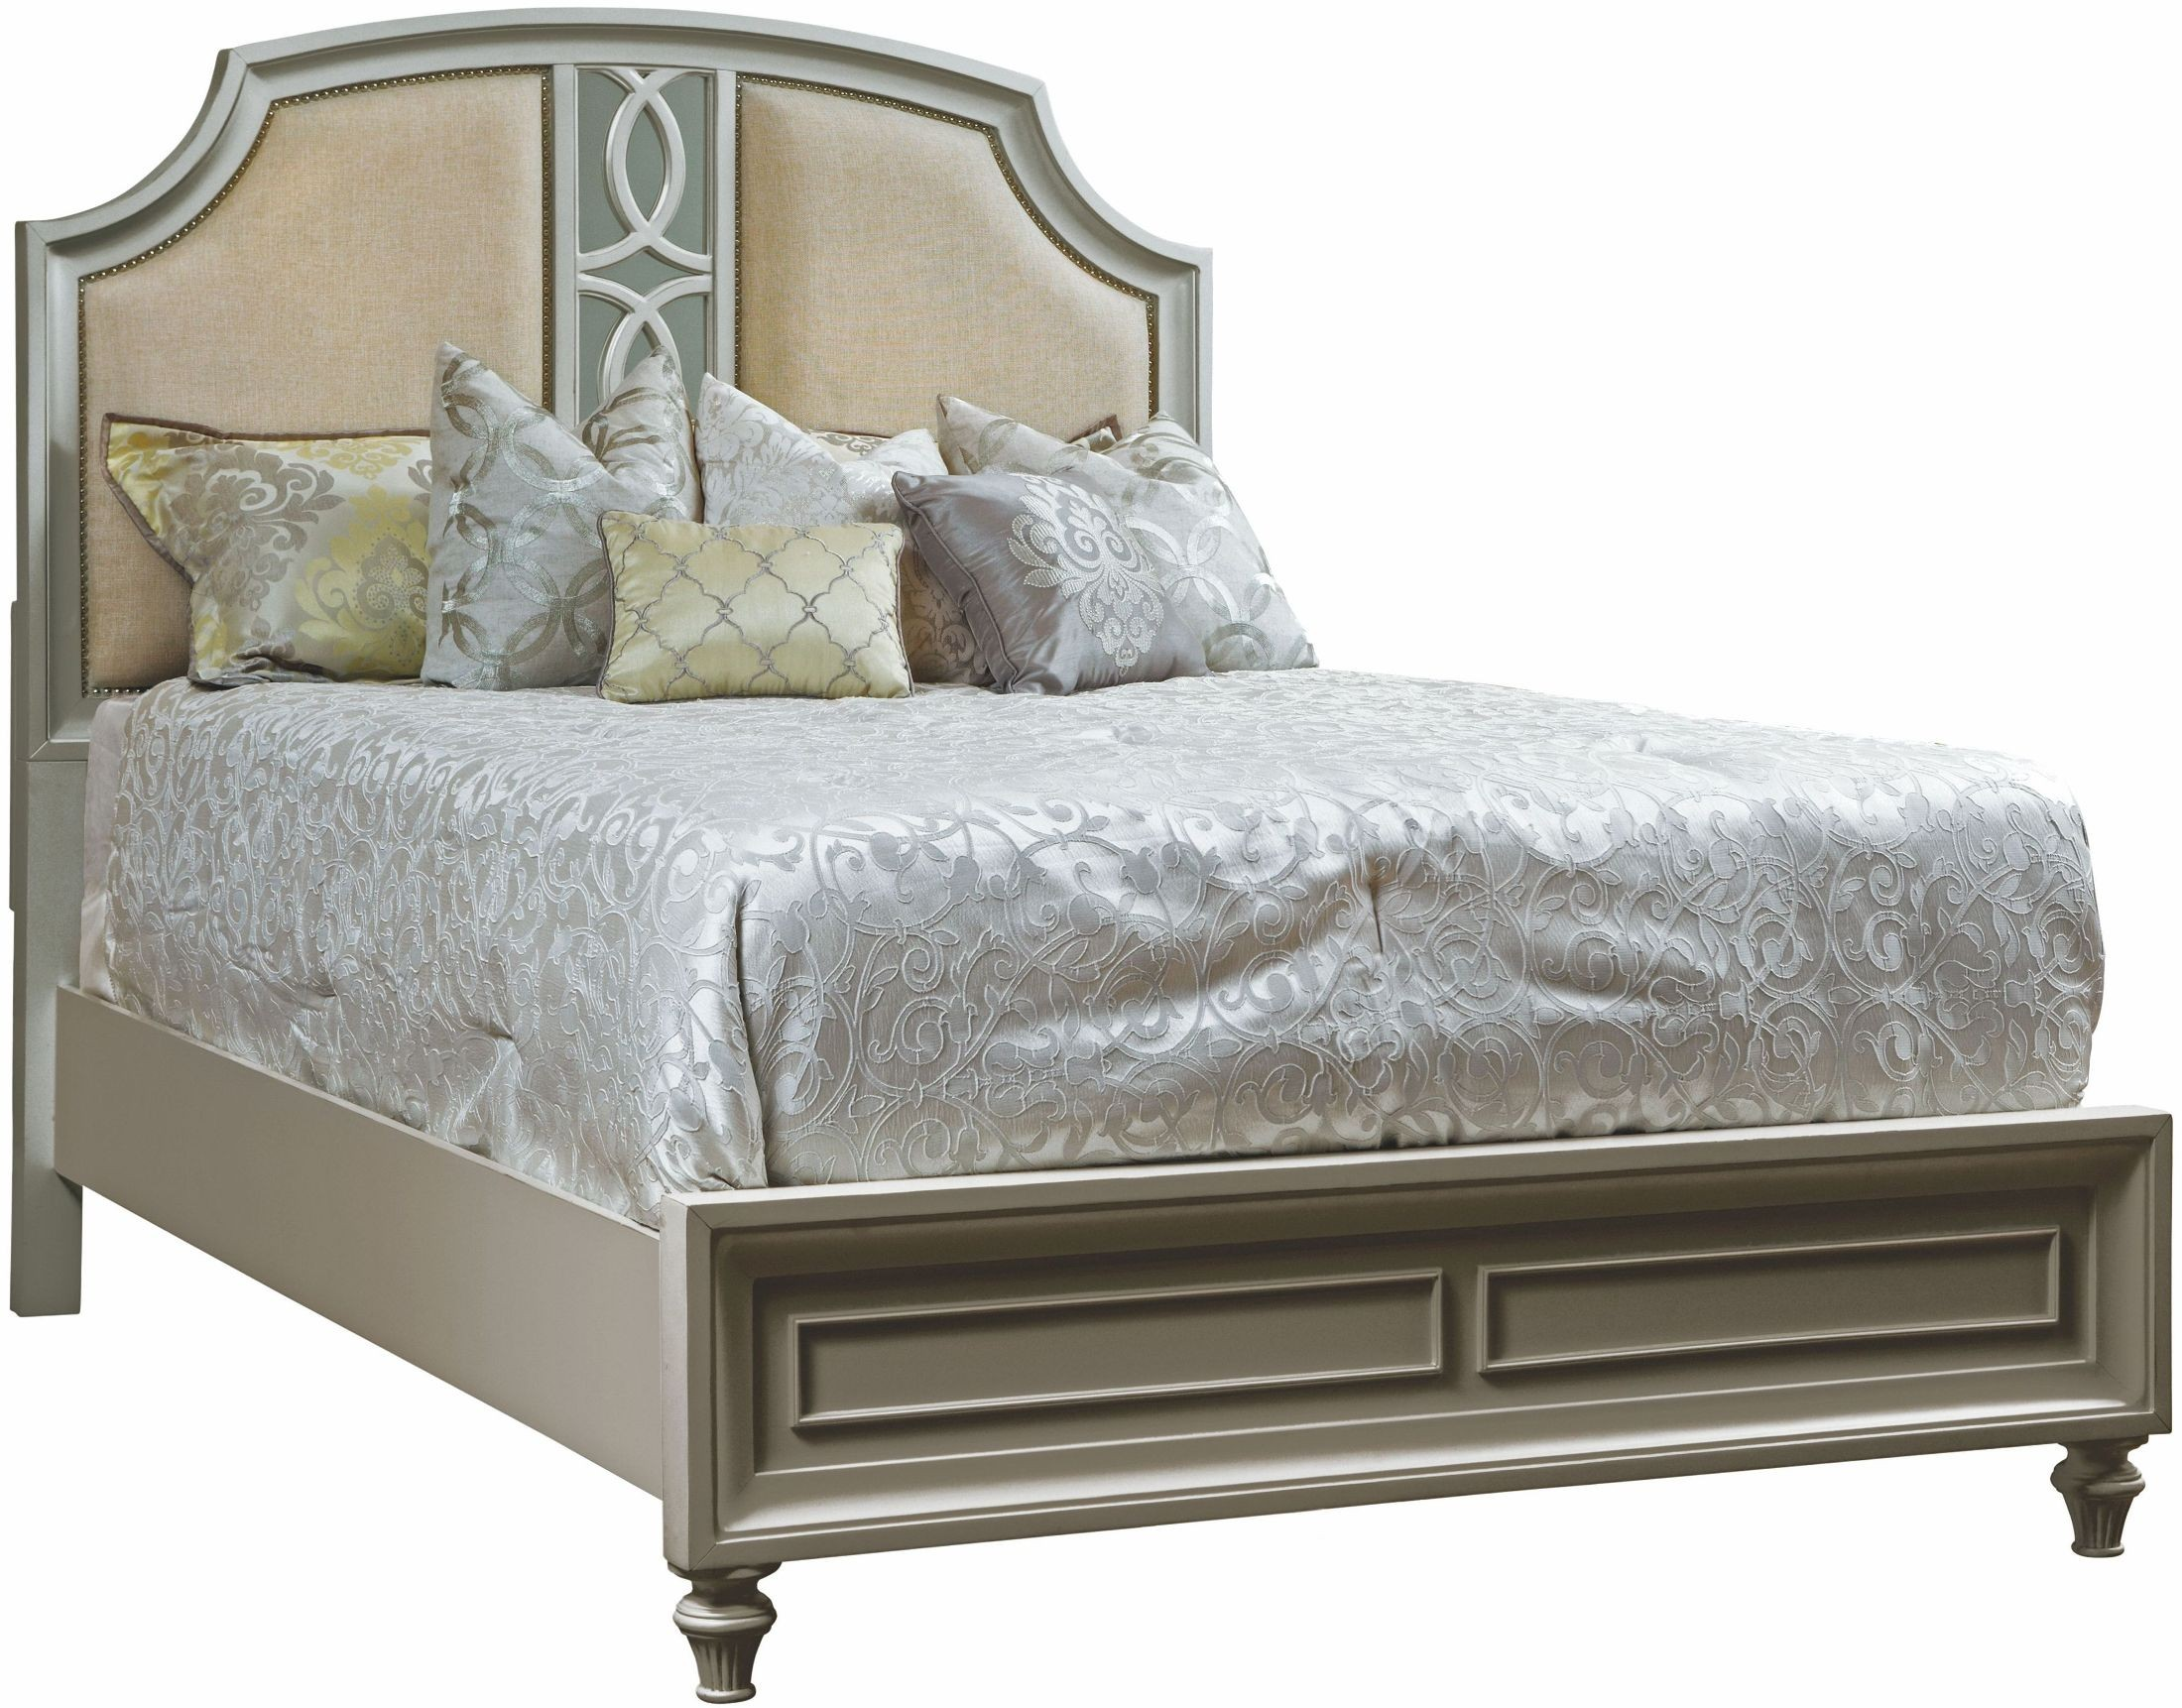 Exceptional Regency Park Pearlized Silver Panel Bedroom Set